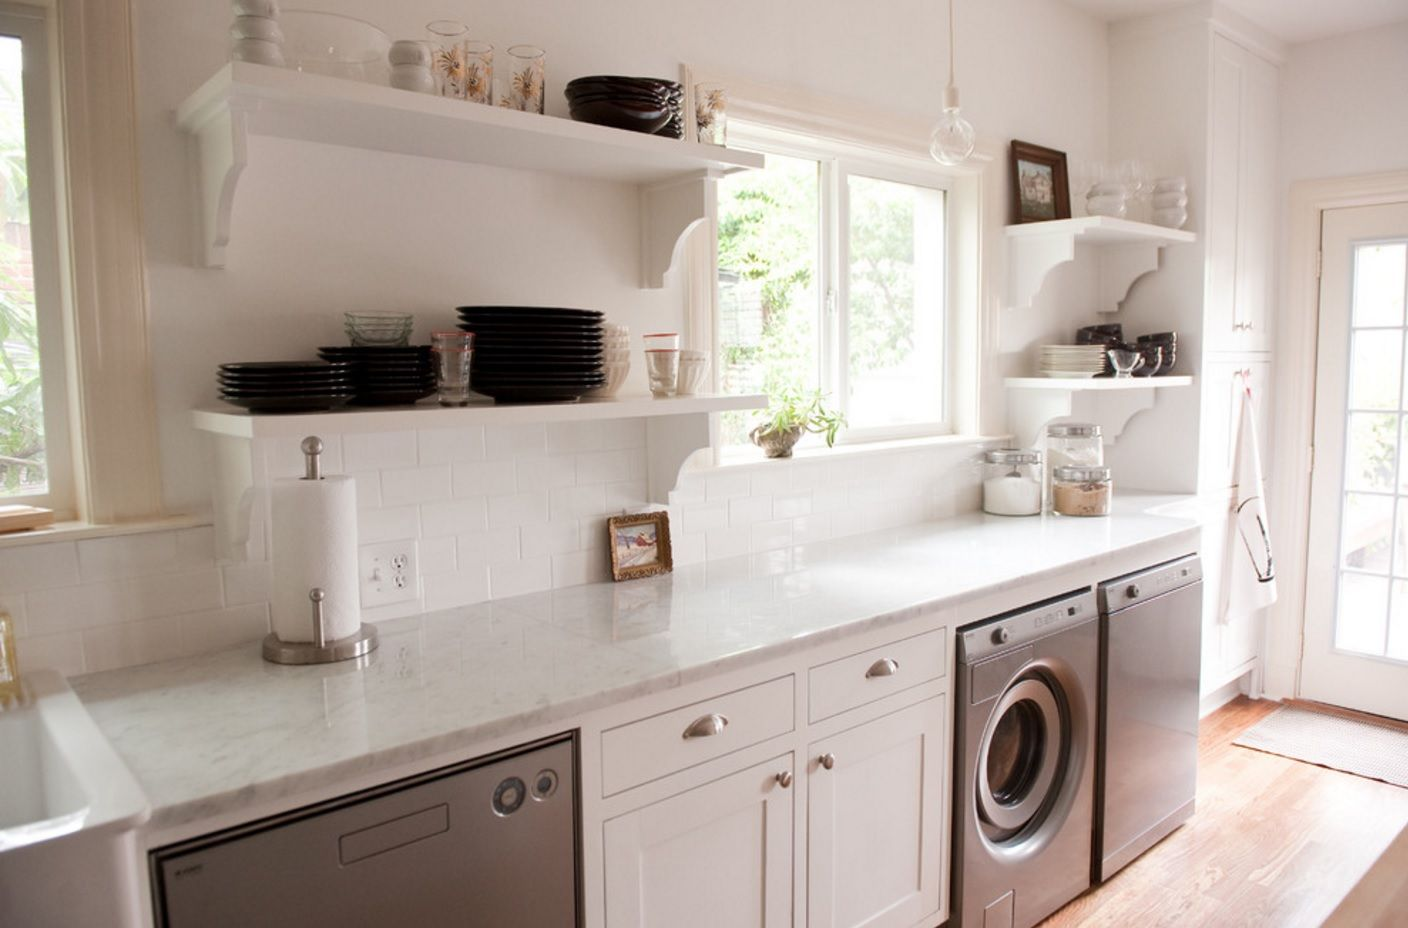 Typical English style for the private house kitchen interior